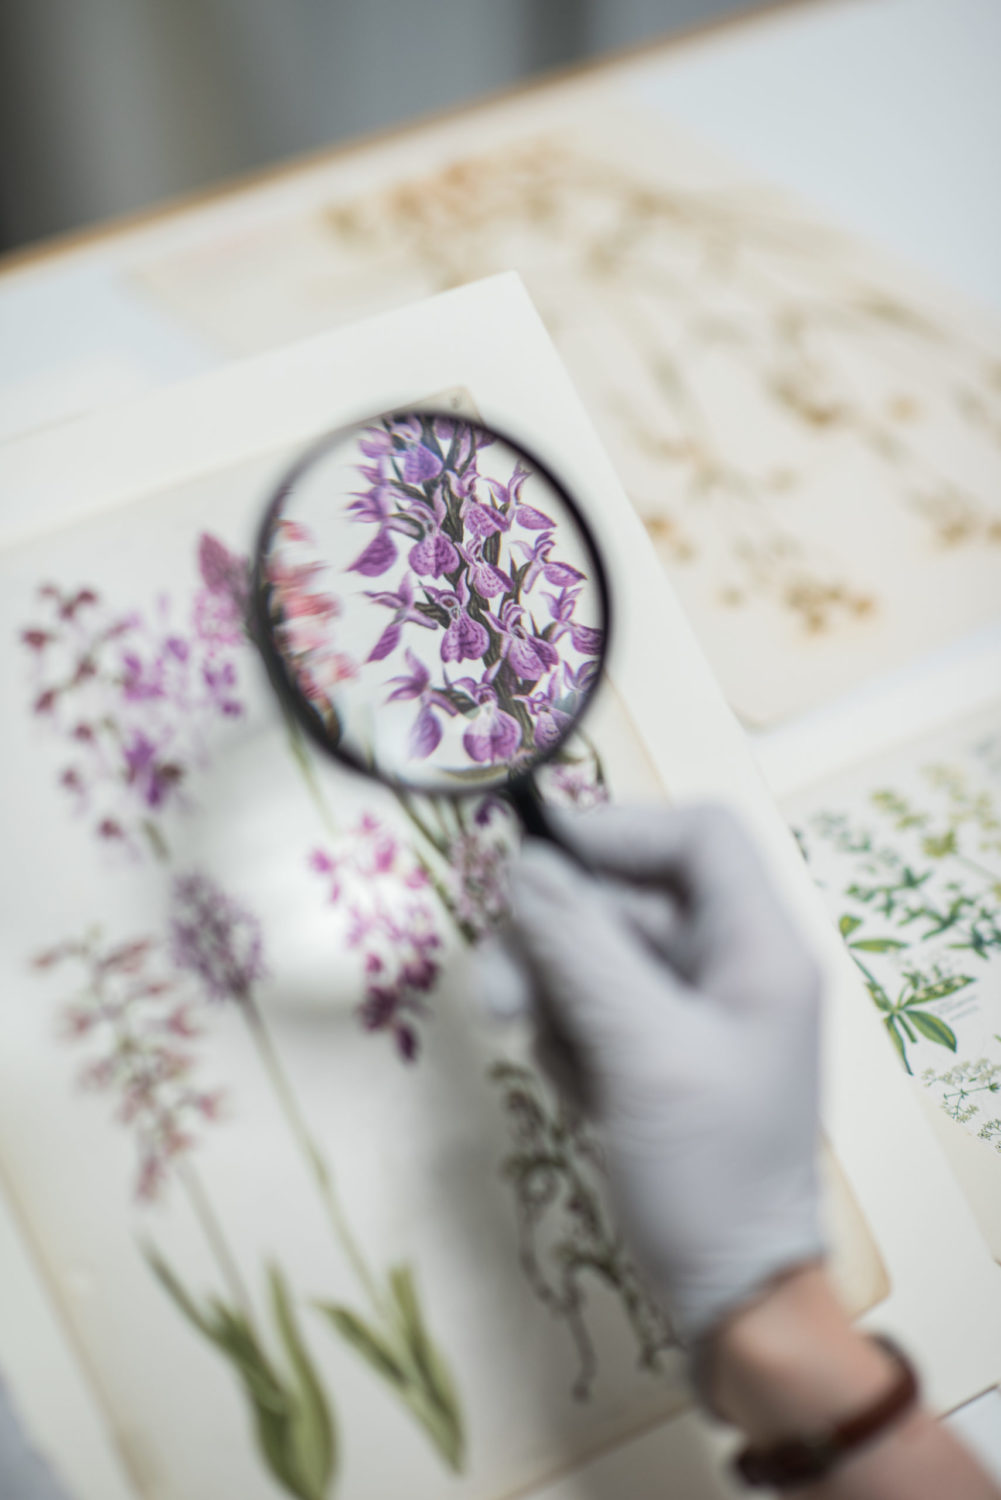 A curator uses a magnifier to examine the 'The Concise British Flora in Colour' by Keble Martin